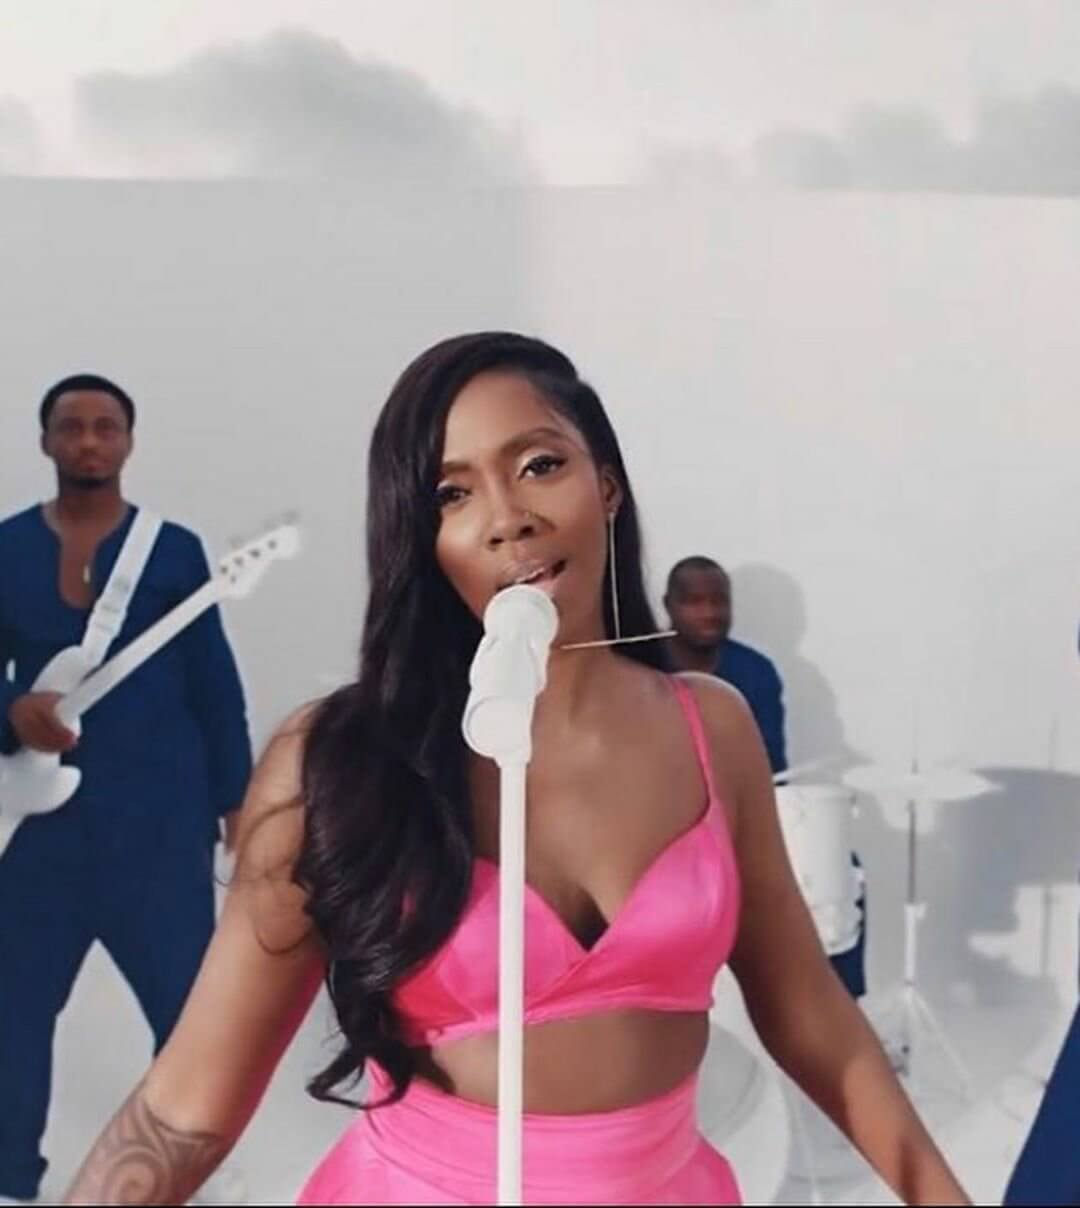 4all tiwa savages must see style moments from the 22celia22 album1265052616320960561